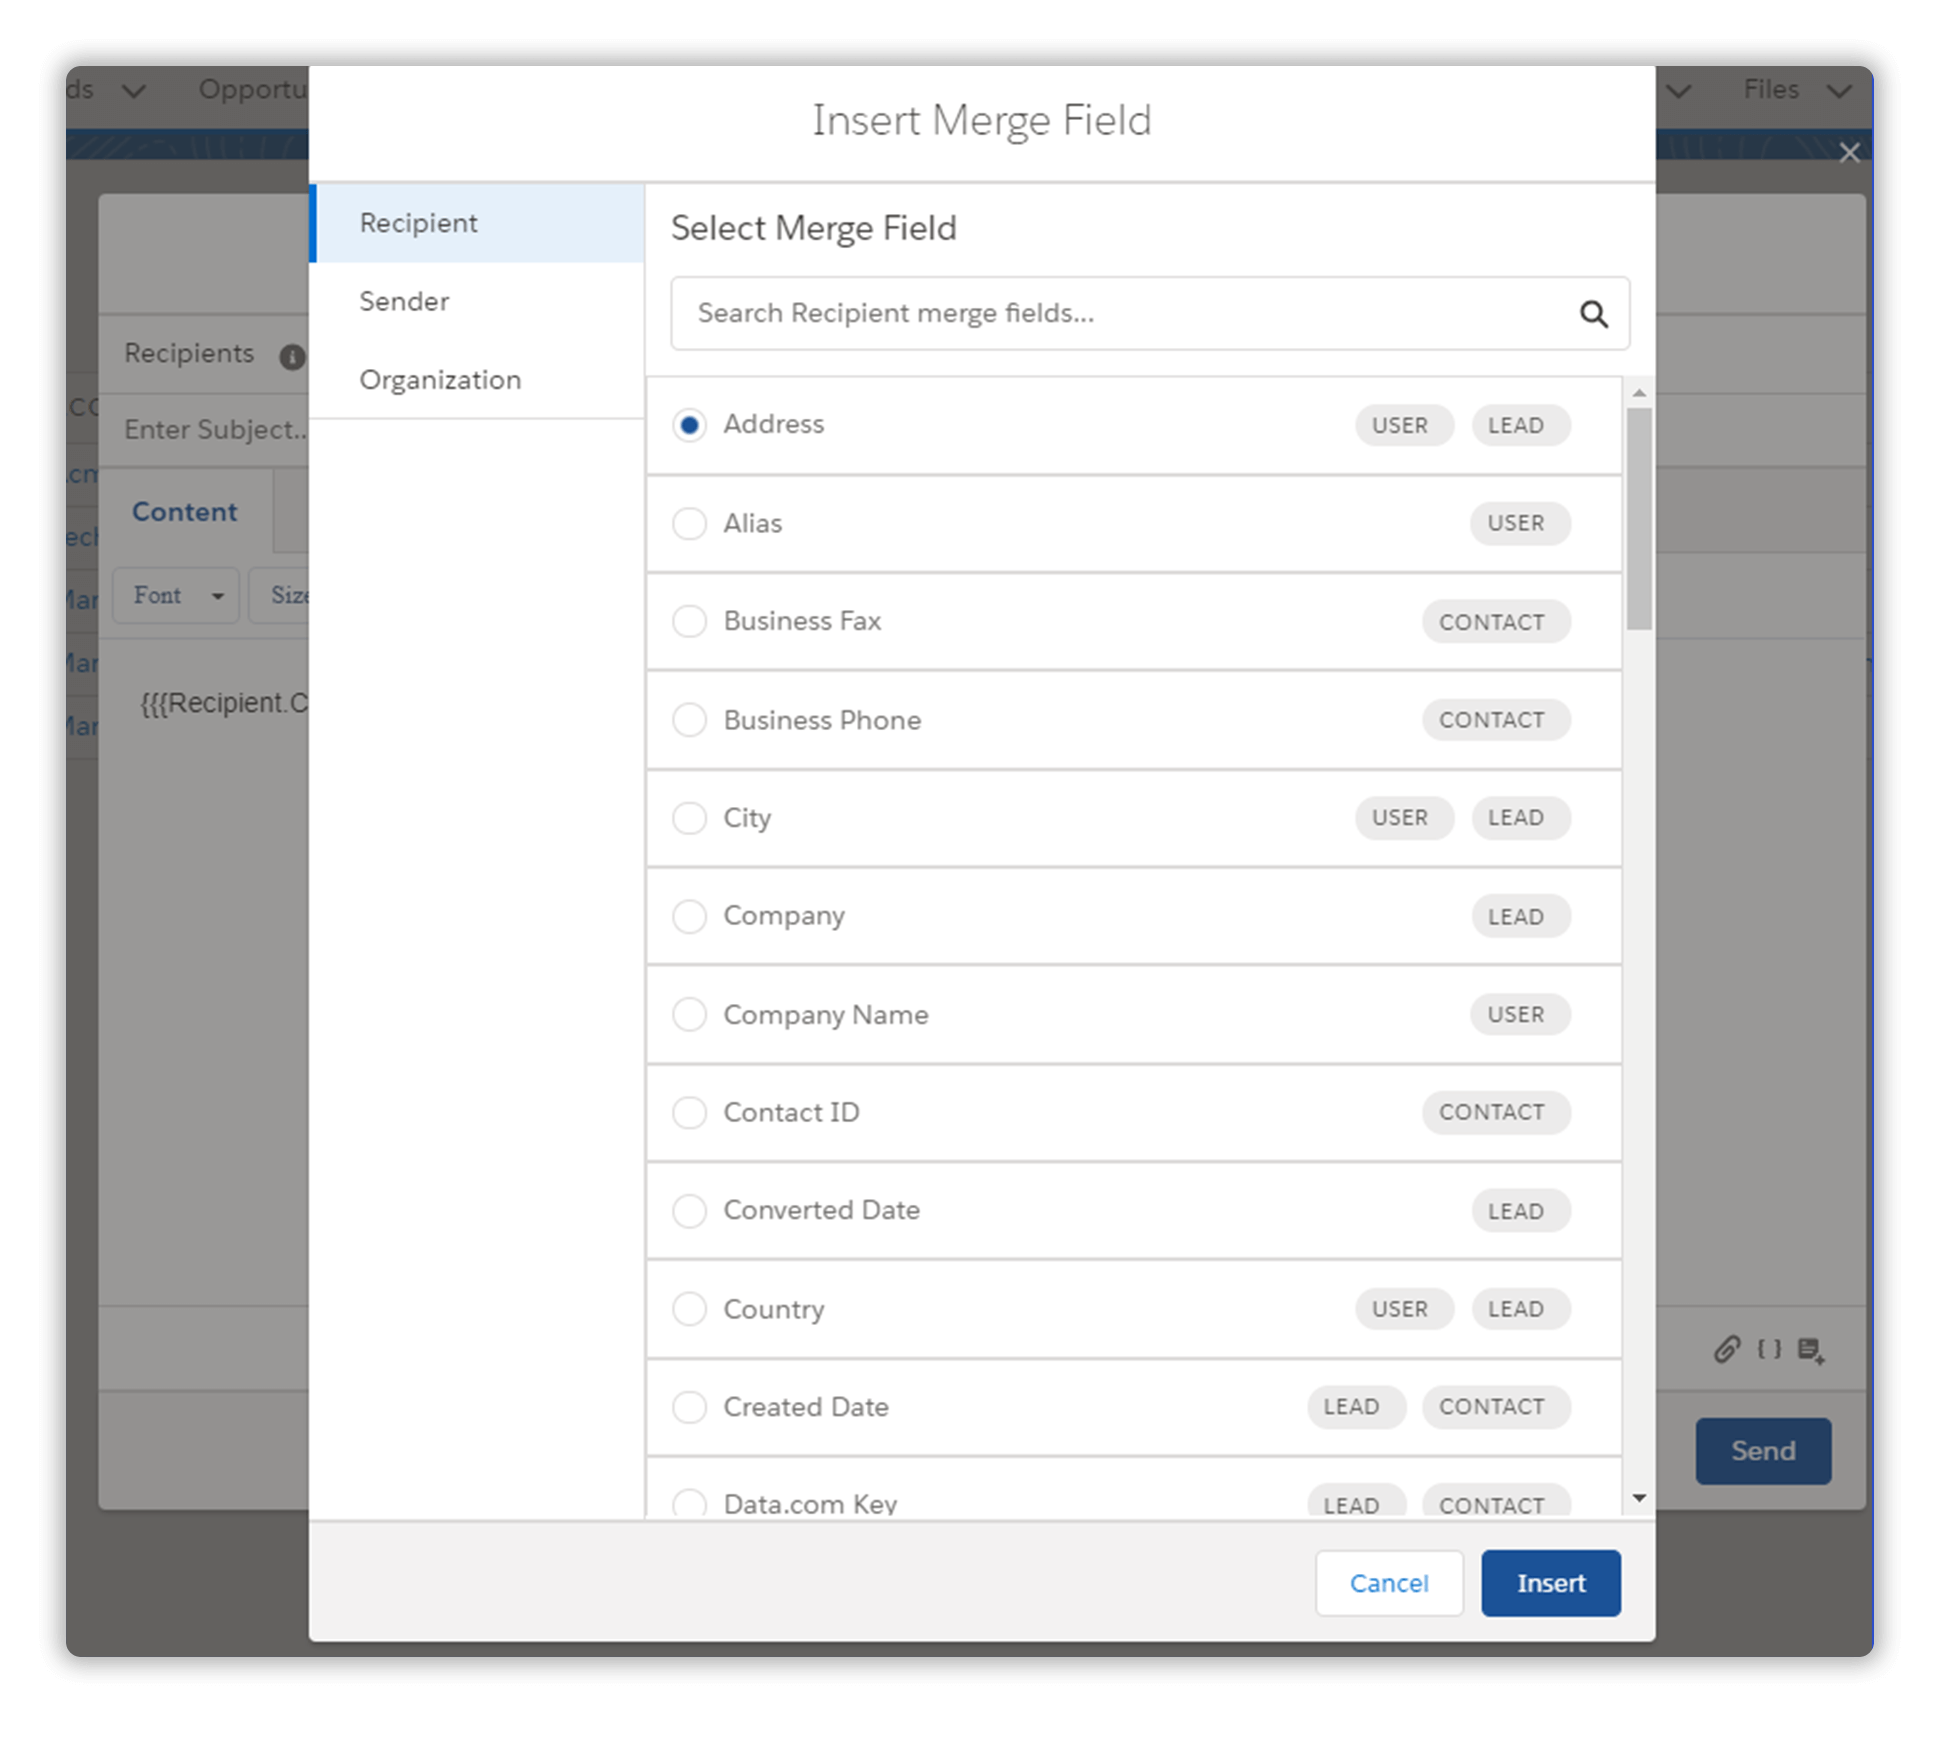 How to Merge Fields to Send Mass Email in Salesforce